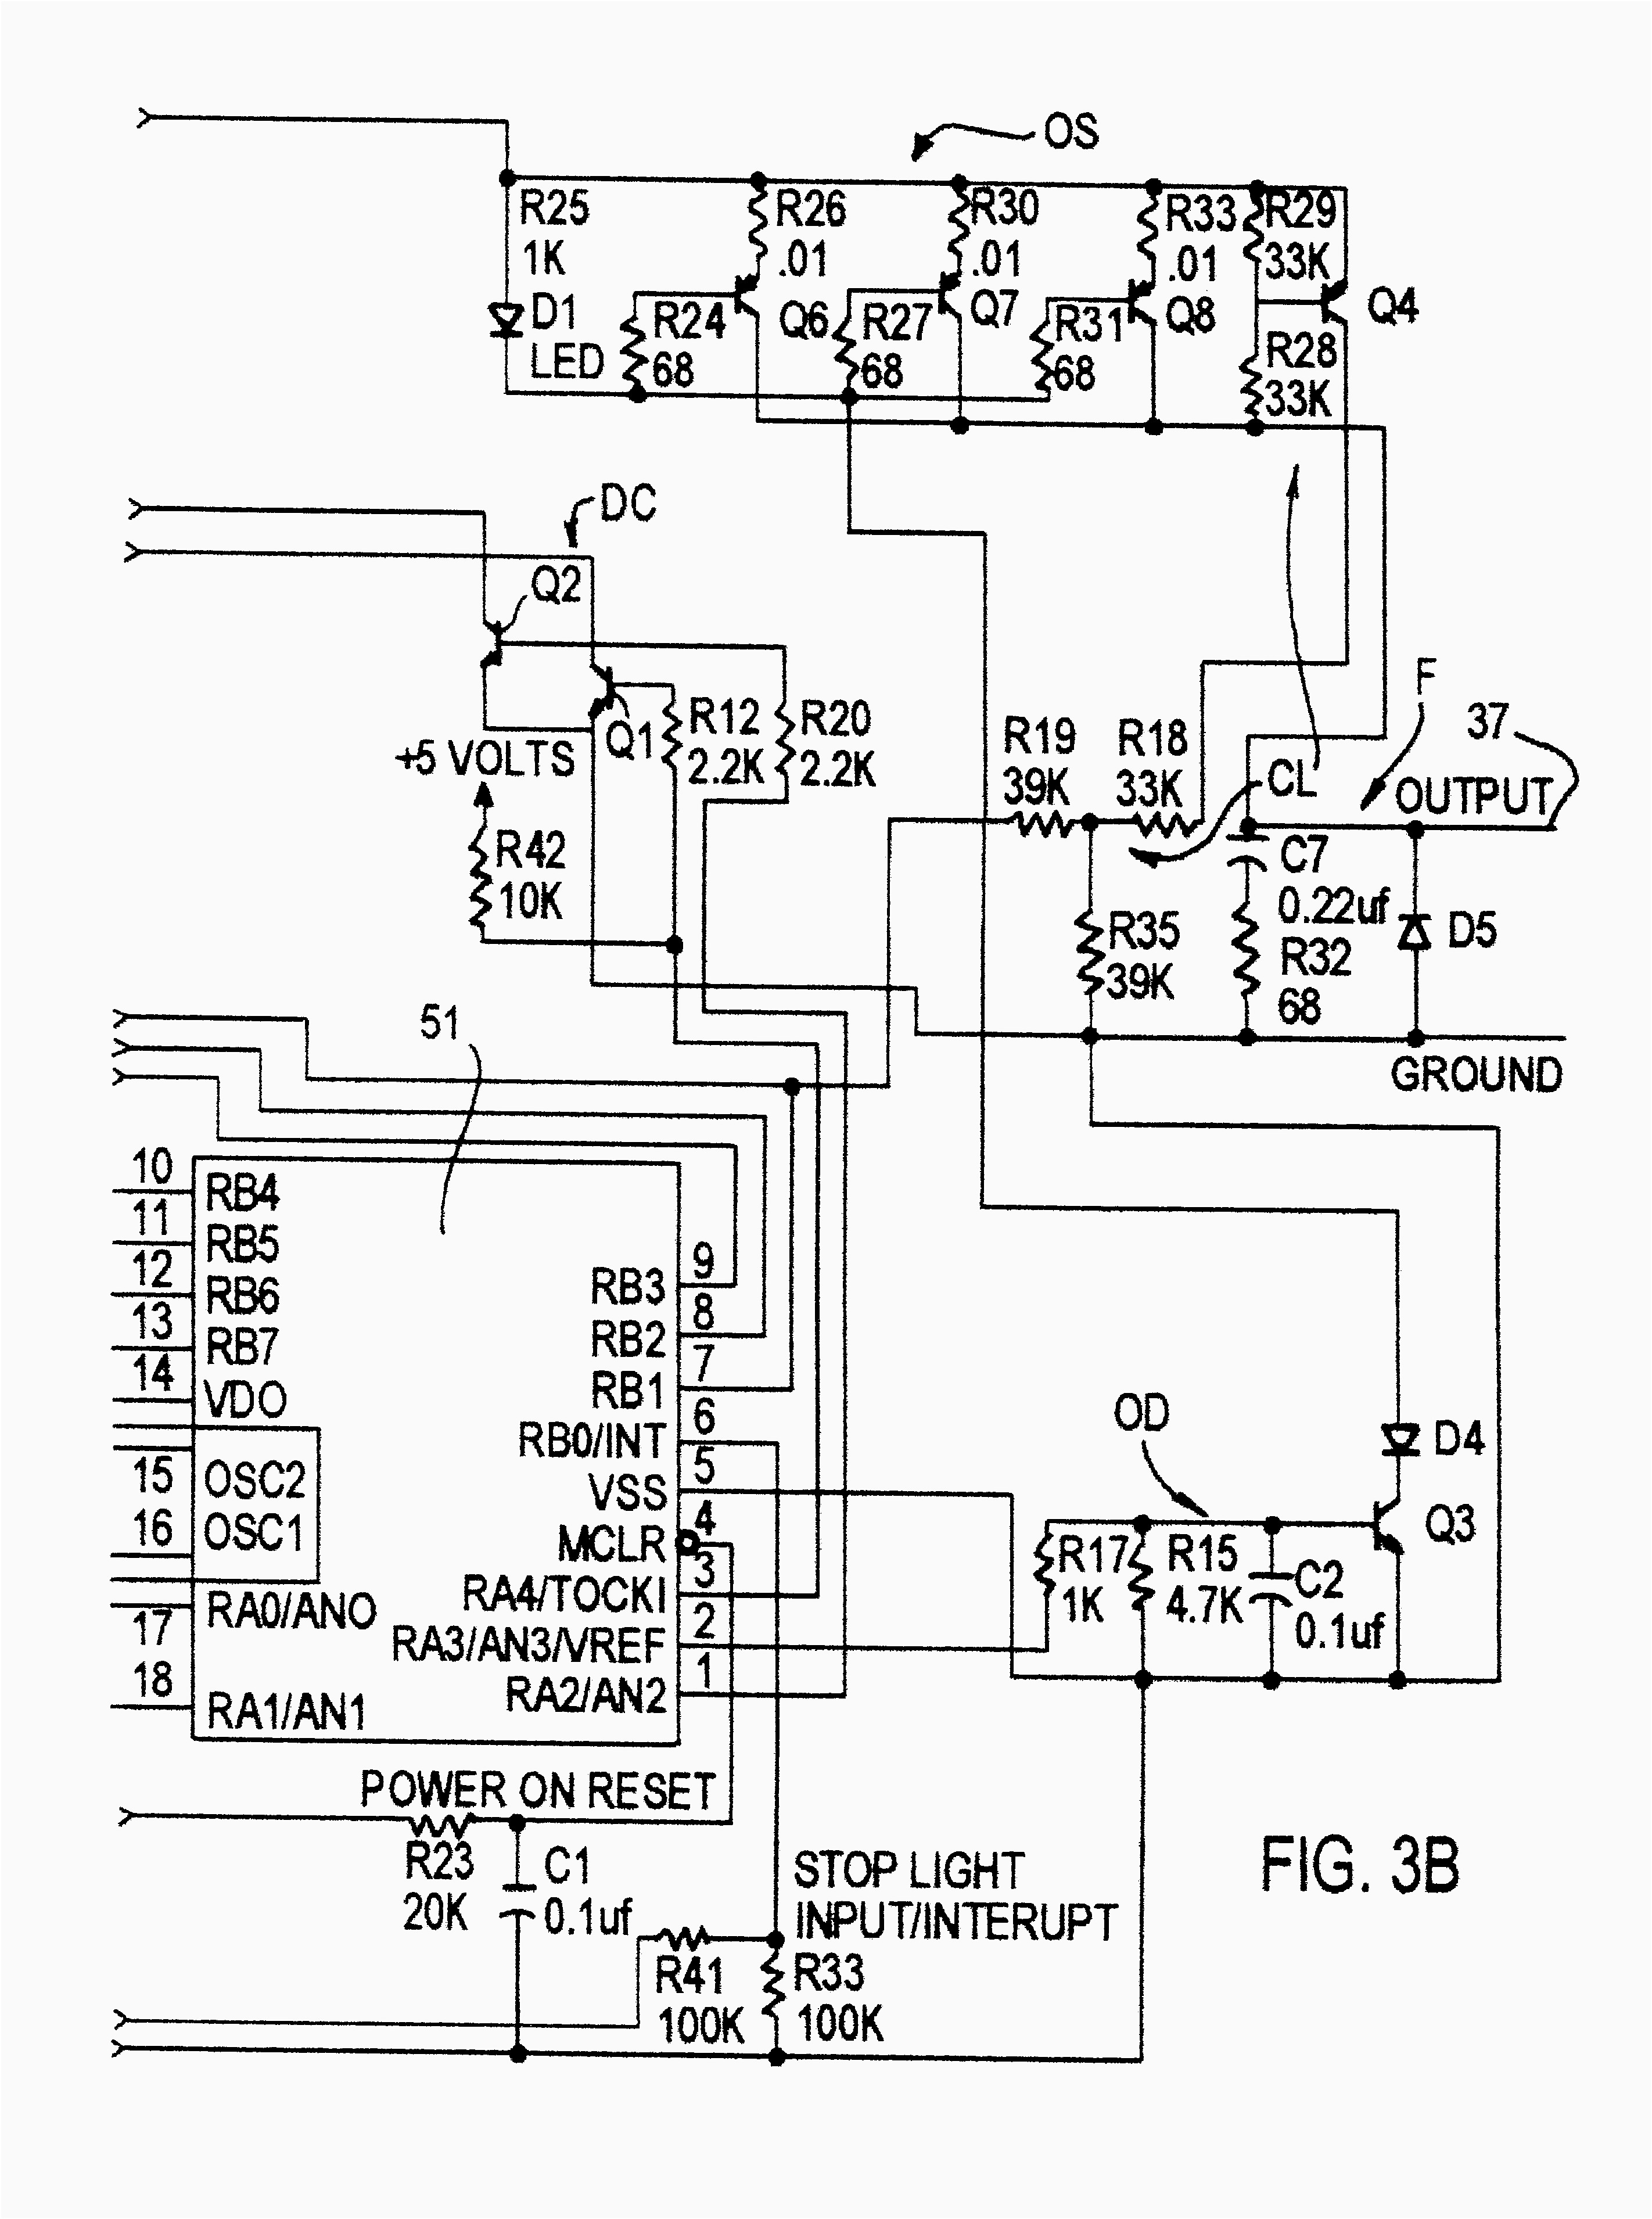 Primus Iq Brake Controller Wiring Diagram Fitfathers Me And At